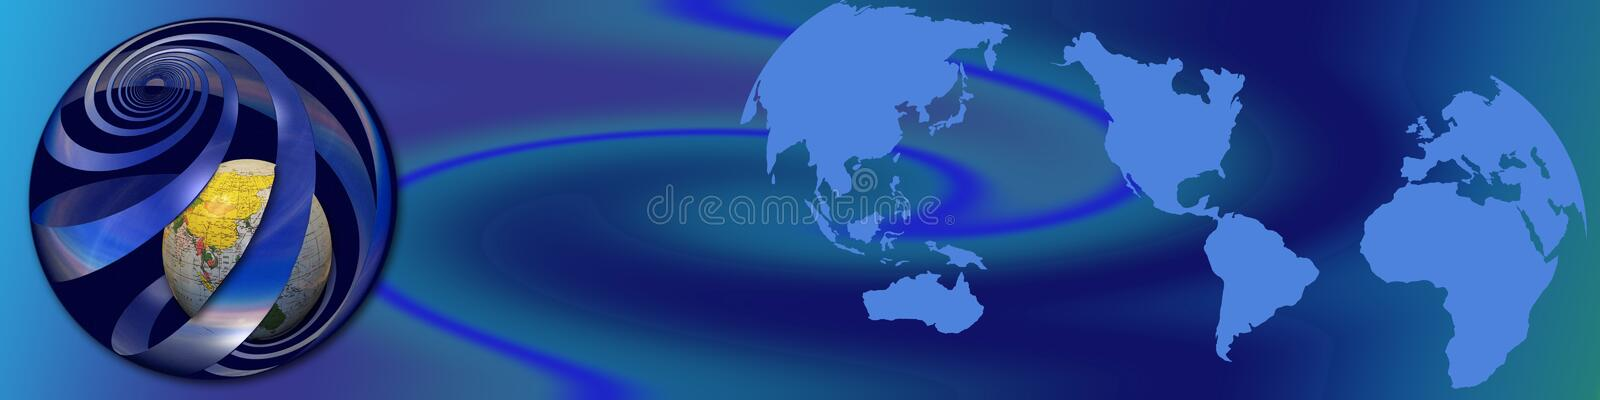 World wide activities. This basic blue banner shows a hollow swirling ball with in the inside our globe. On the right part are the continents. The shapes and vector illustration